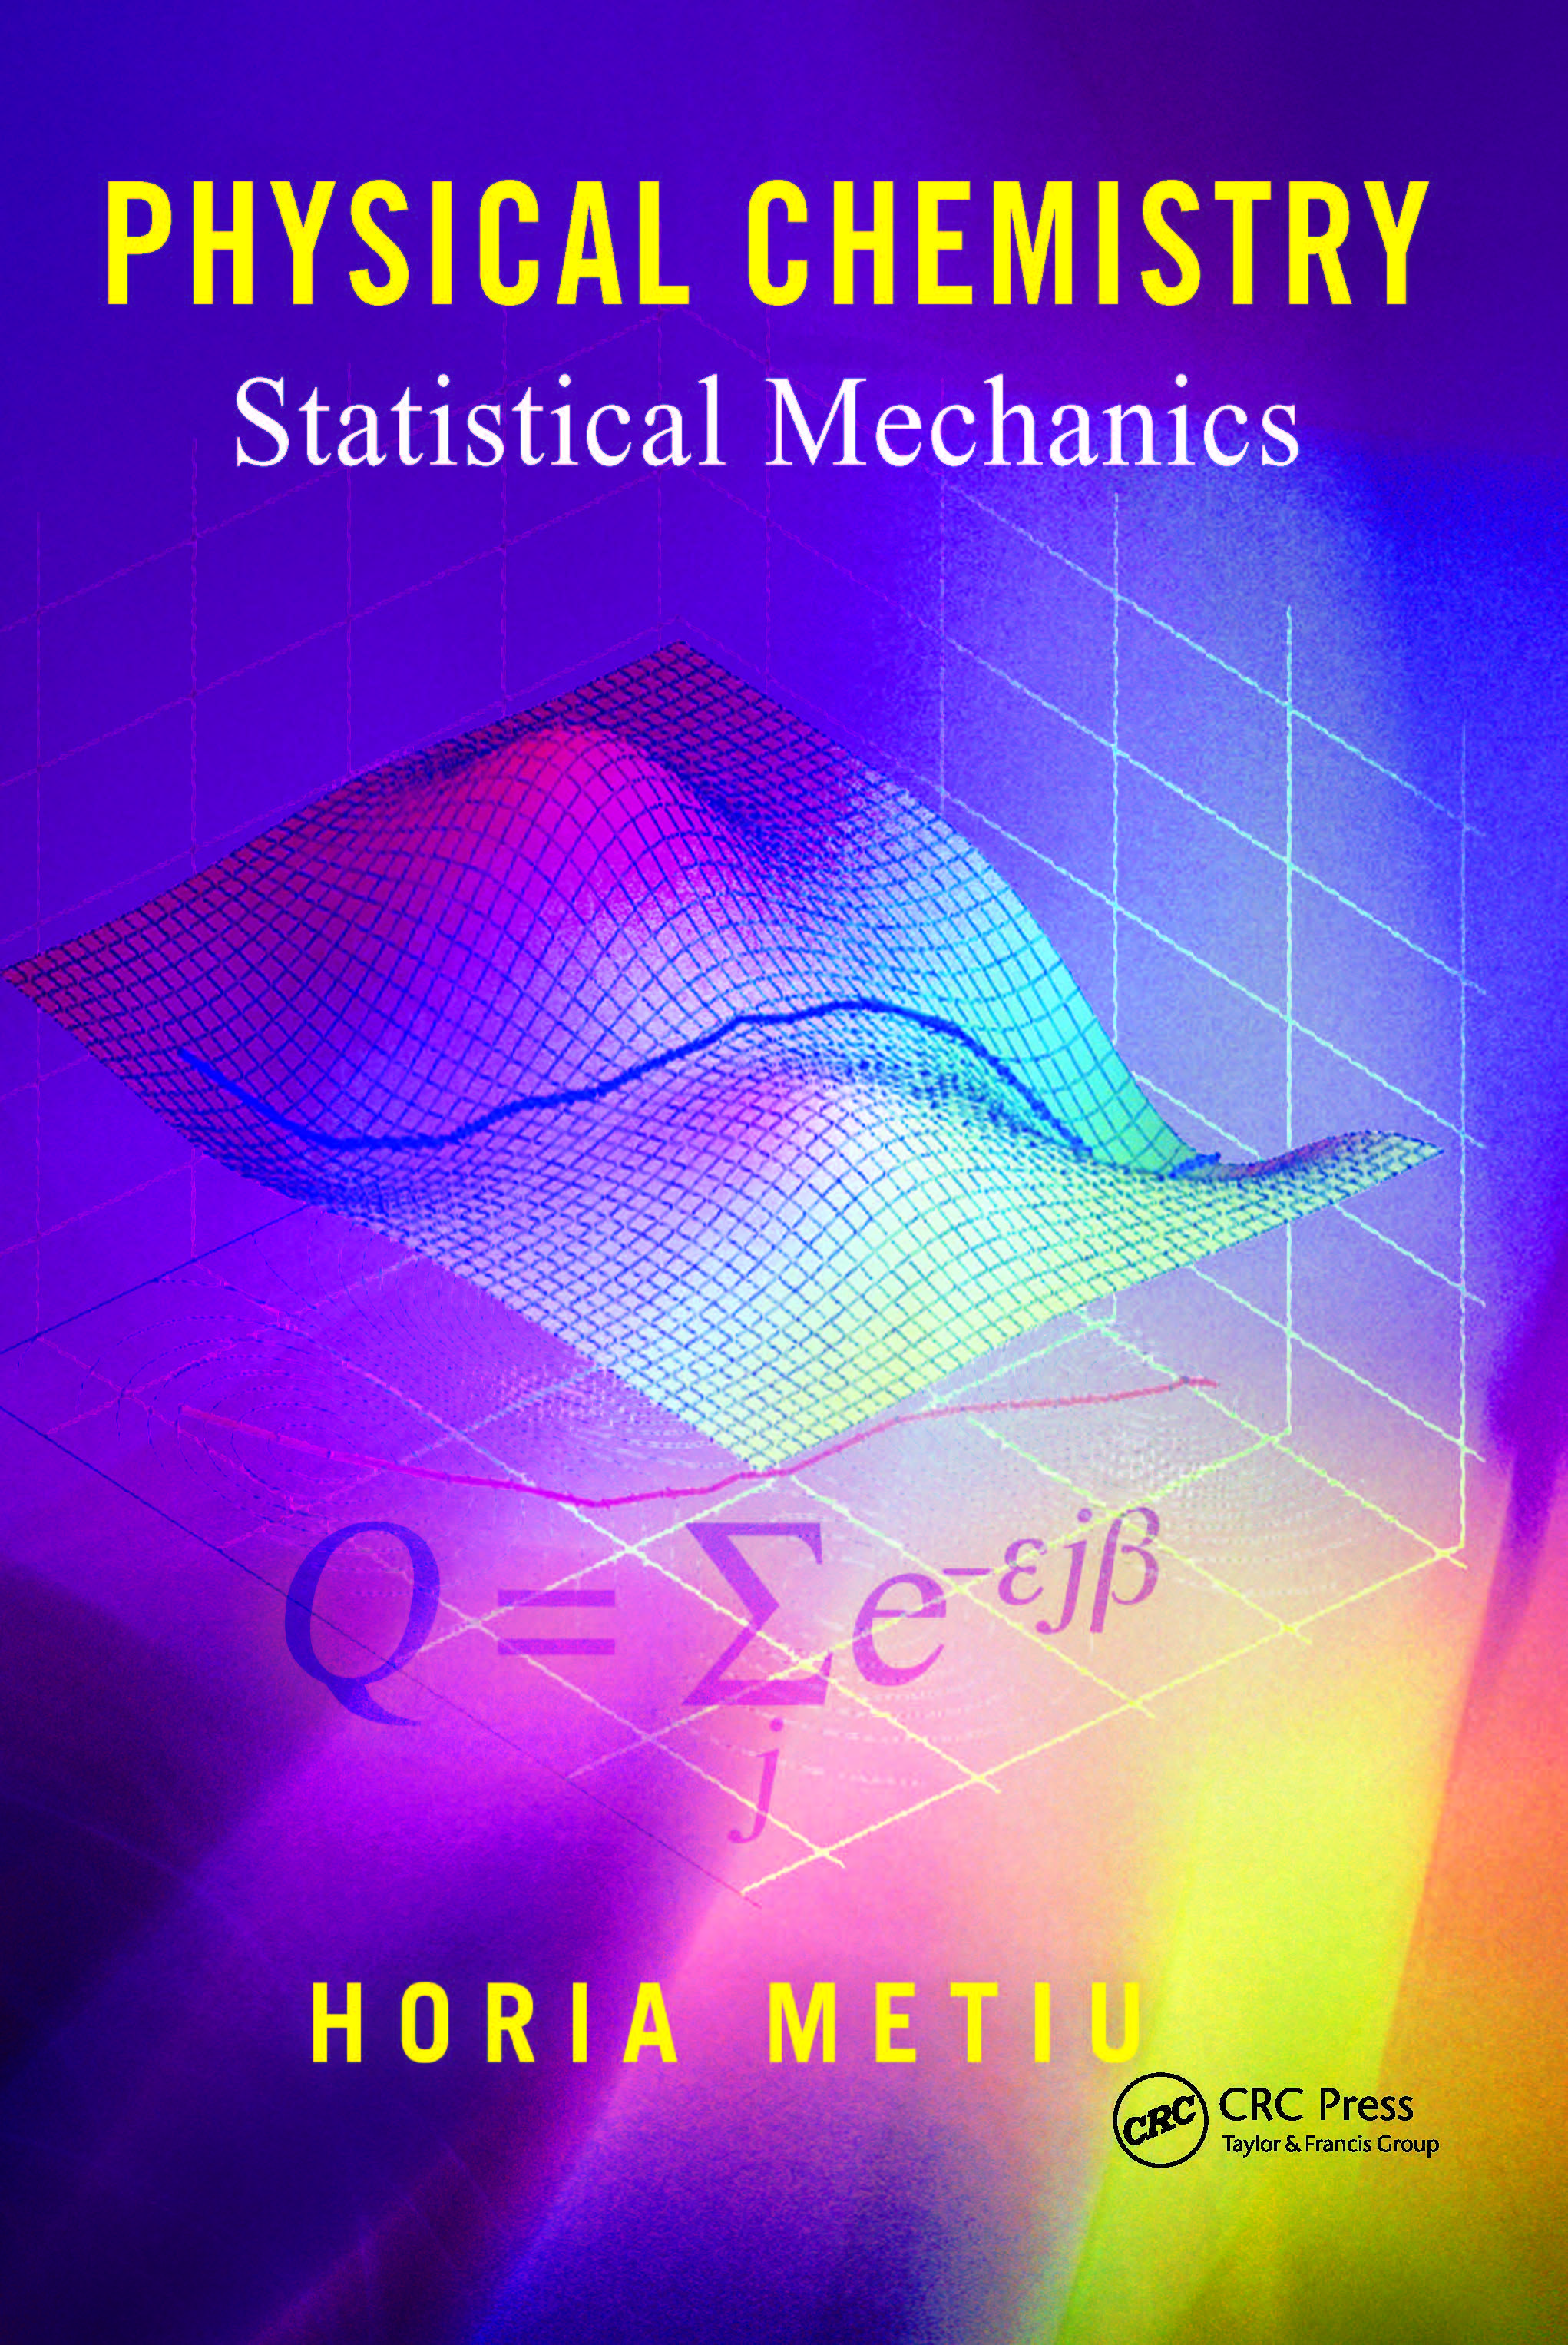 Physical chemistry statistical mechanics crc press book fandeluxe Choice Image